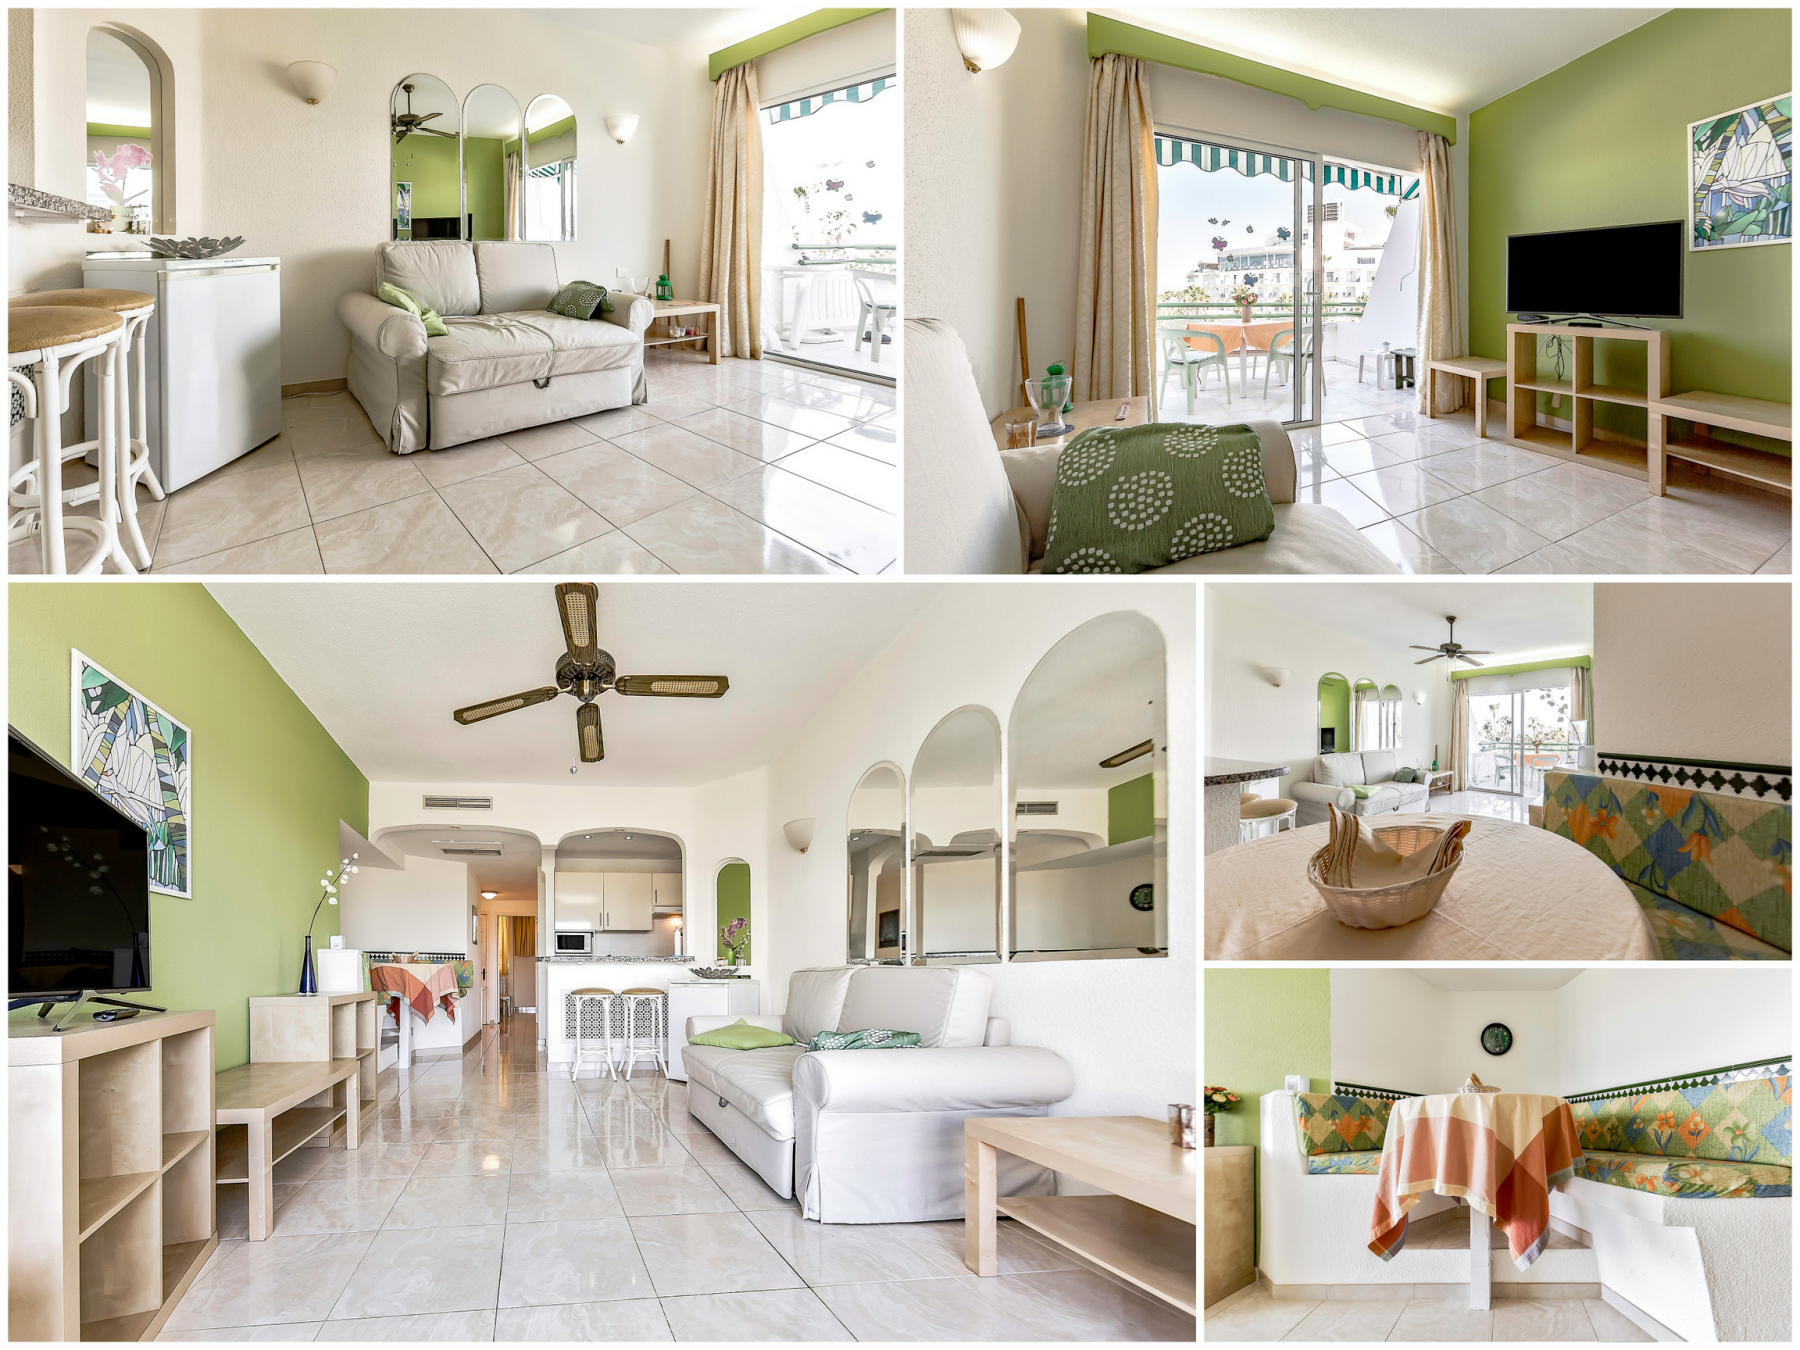 Properties for Sale in Tenerife, Canary Islands, Spain | SylkWayStar Real Estate. Lovely 1 Bedroom Apartment - Altamira. Image-25893